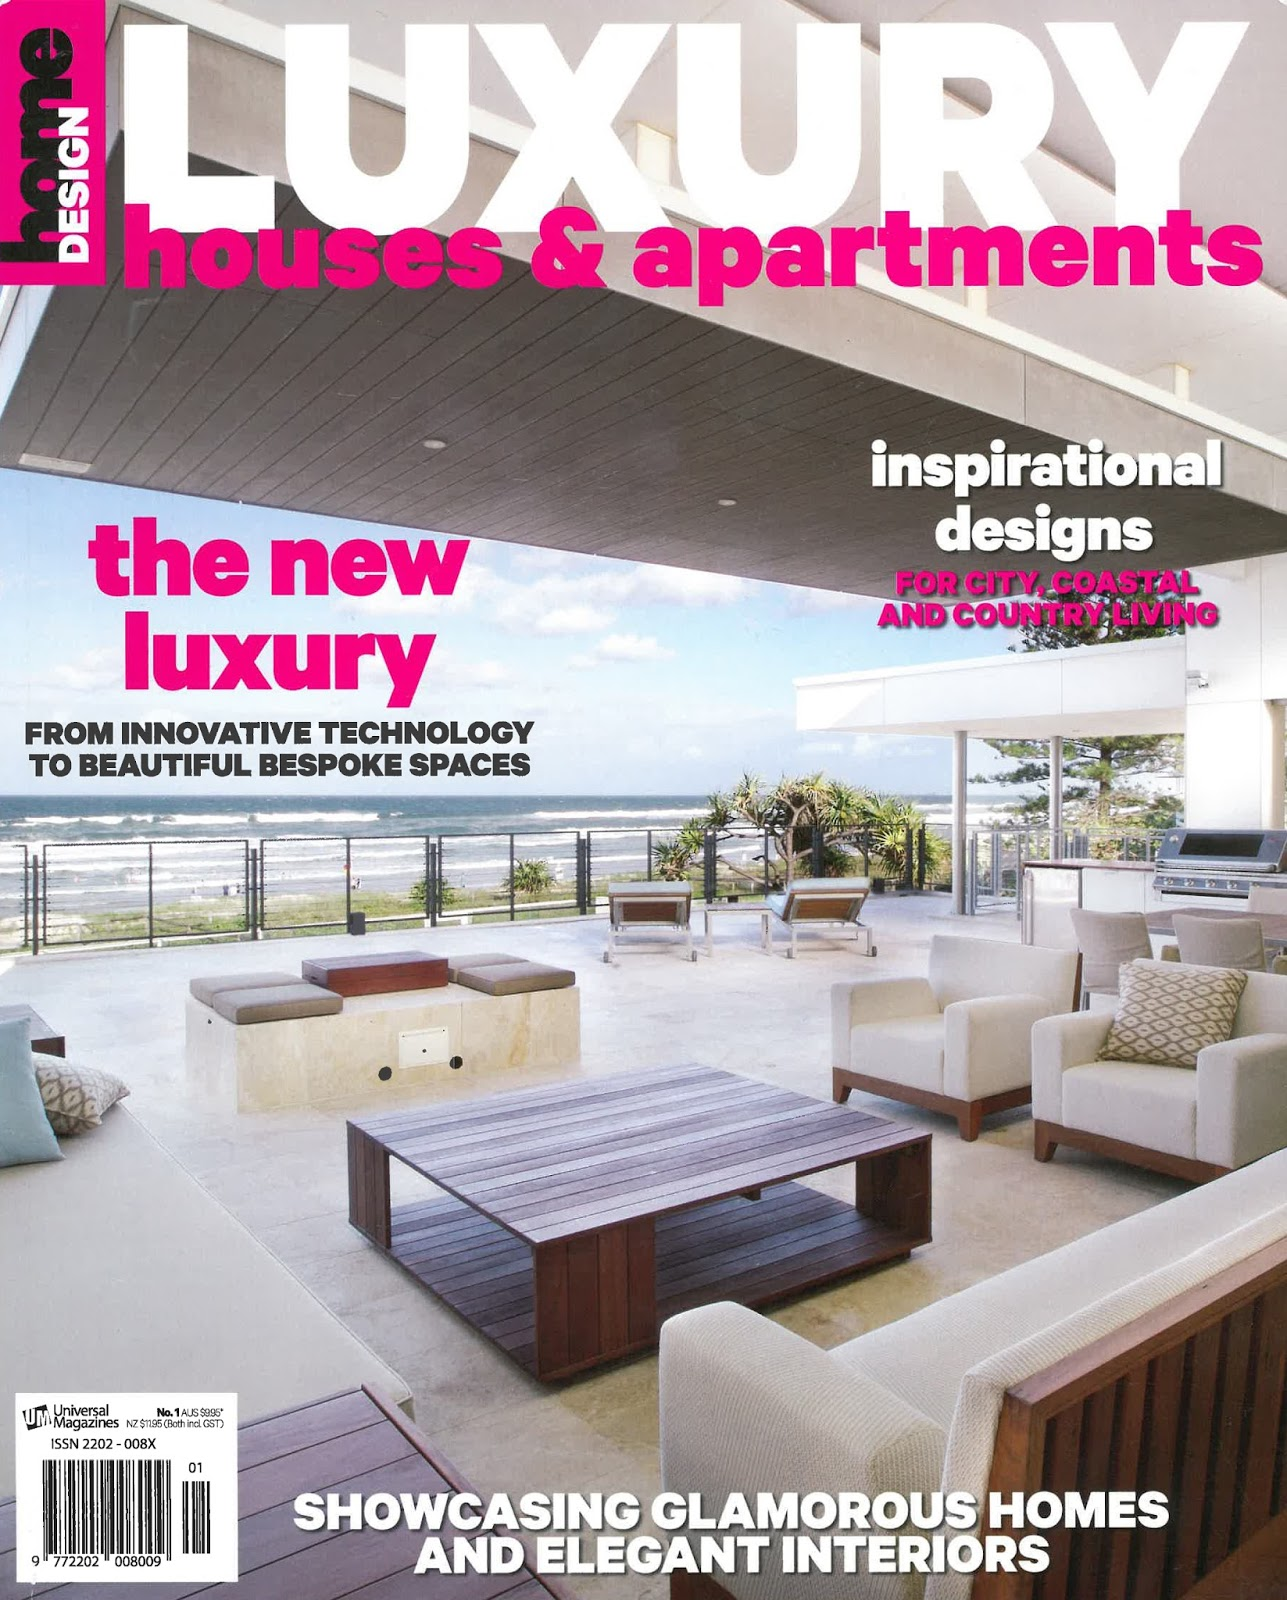 Home Design Magazines Nz I Subscribe To New Zealand House U - Luxury home designs magazine